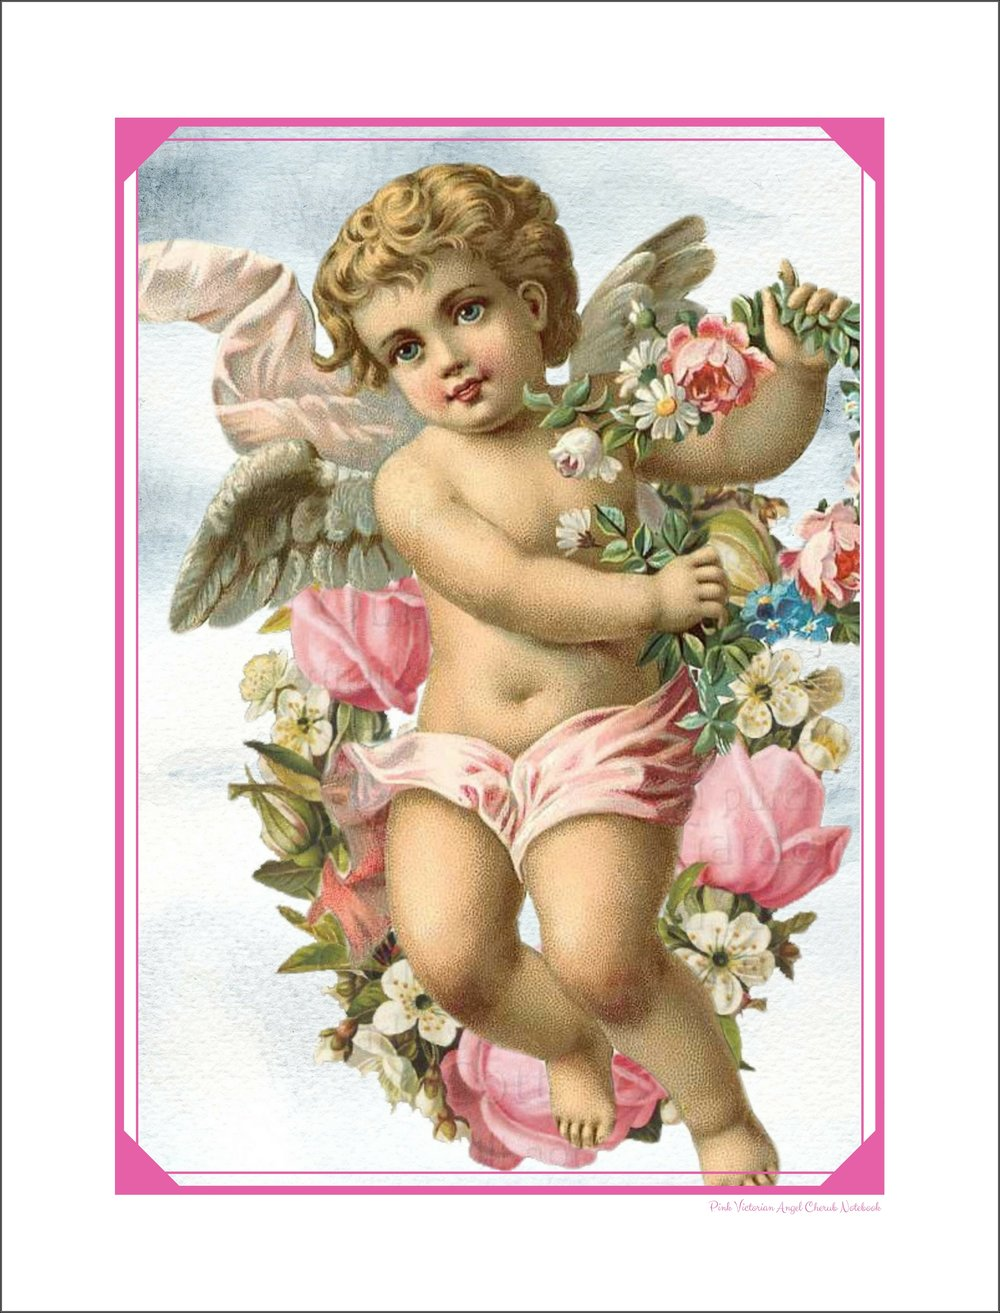 - A precious victorian style cherub angel graces the cover of this wide ruled notebook. Back cover features matching hot pink color. For all the angels lover's out there!Features:Large size notebook measures 8.5 x 11 inchesWide ruled lined paperFlexible soft cover design. Glossy.100 pages White interior pages60 # paper stockMade in the USA Created with love